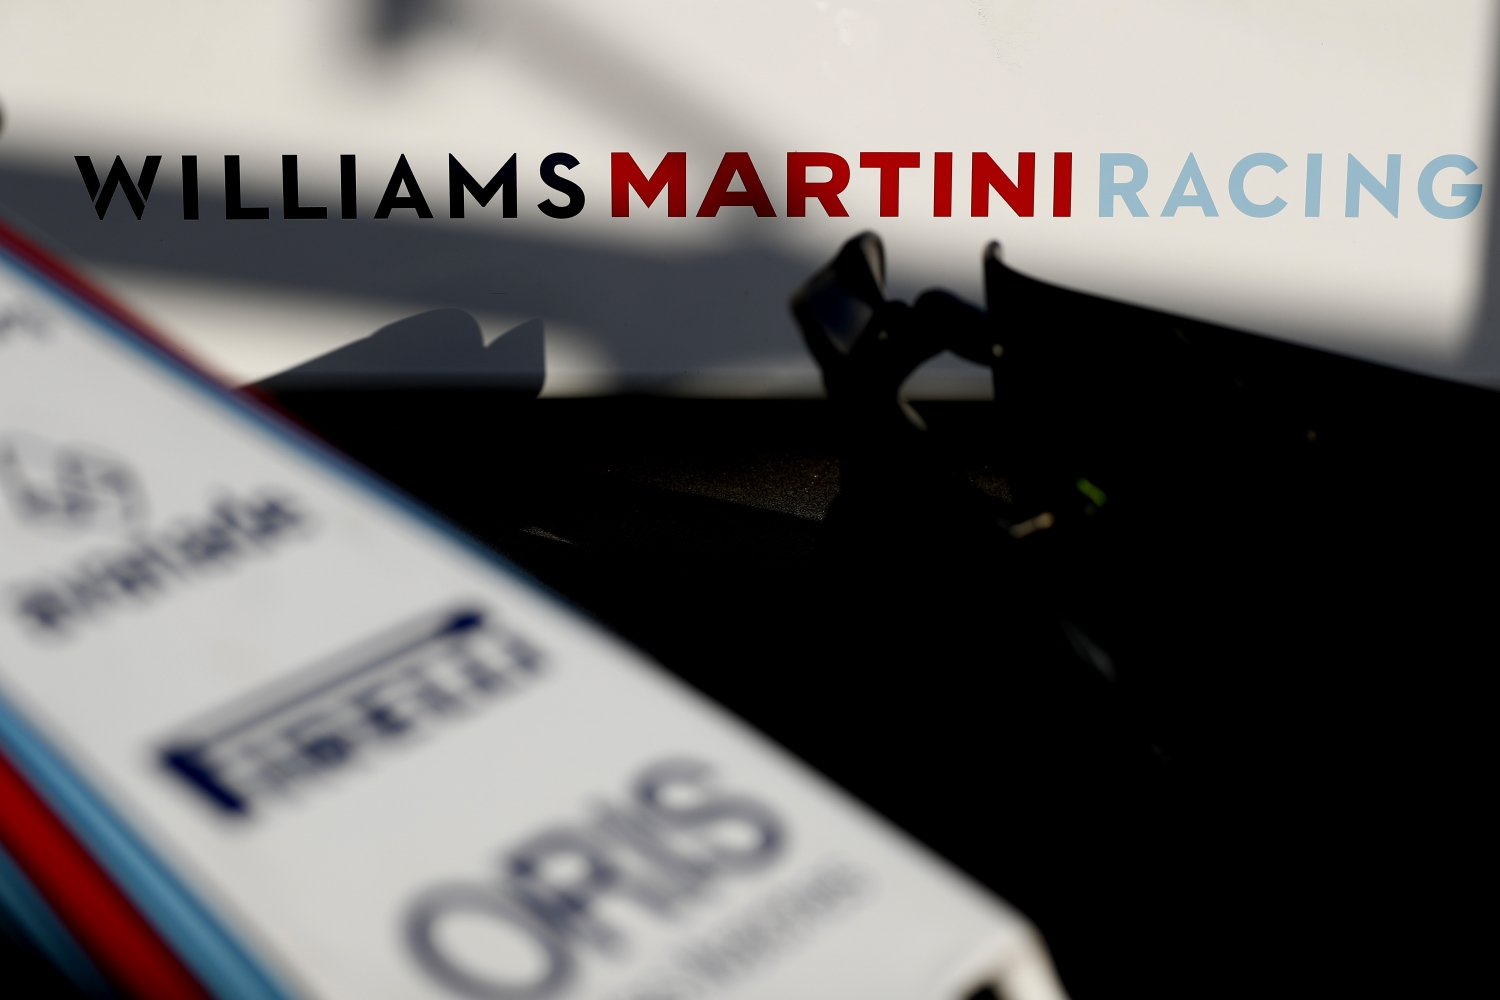 © Williams - L'équipe Williams devra changer de couleurs en 2019